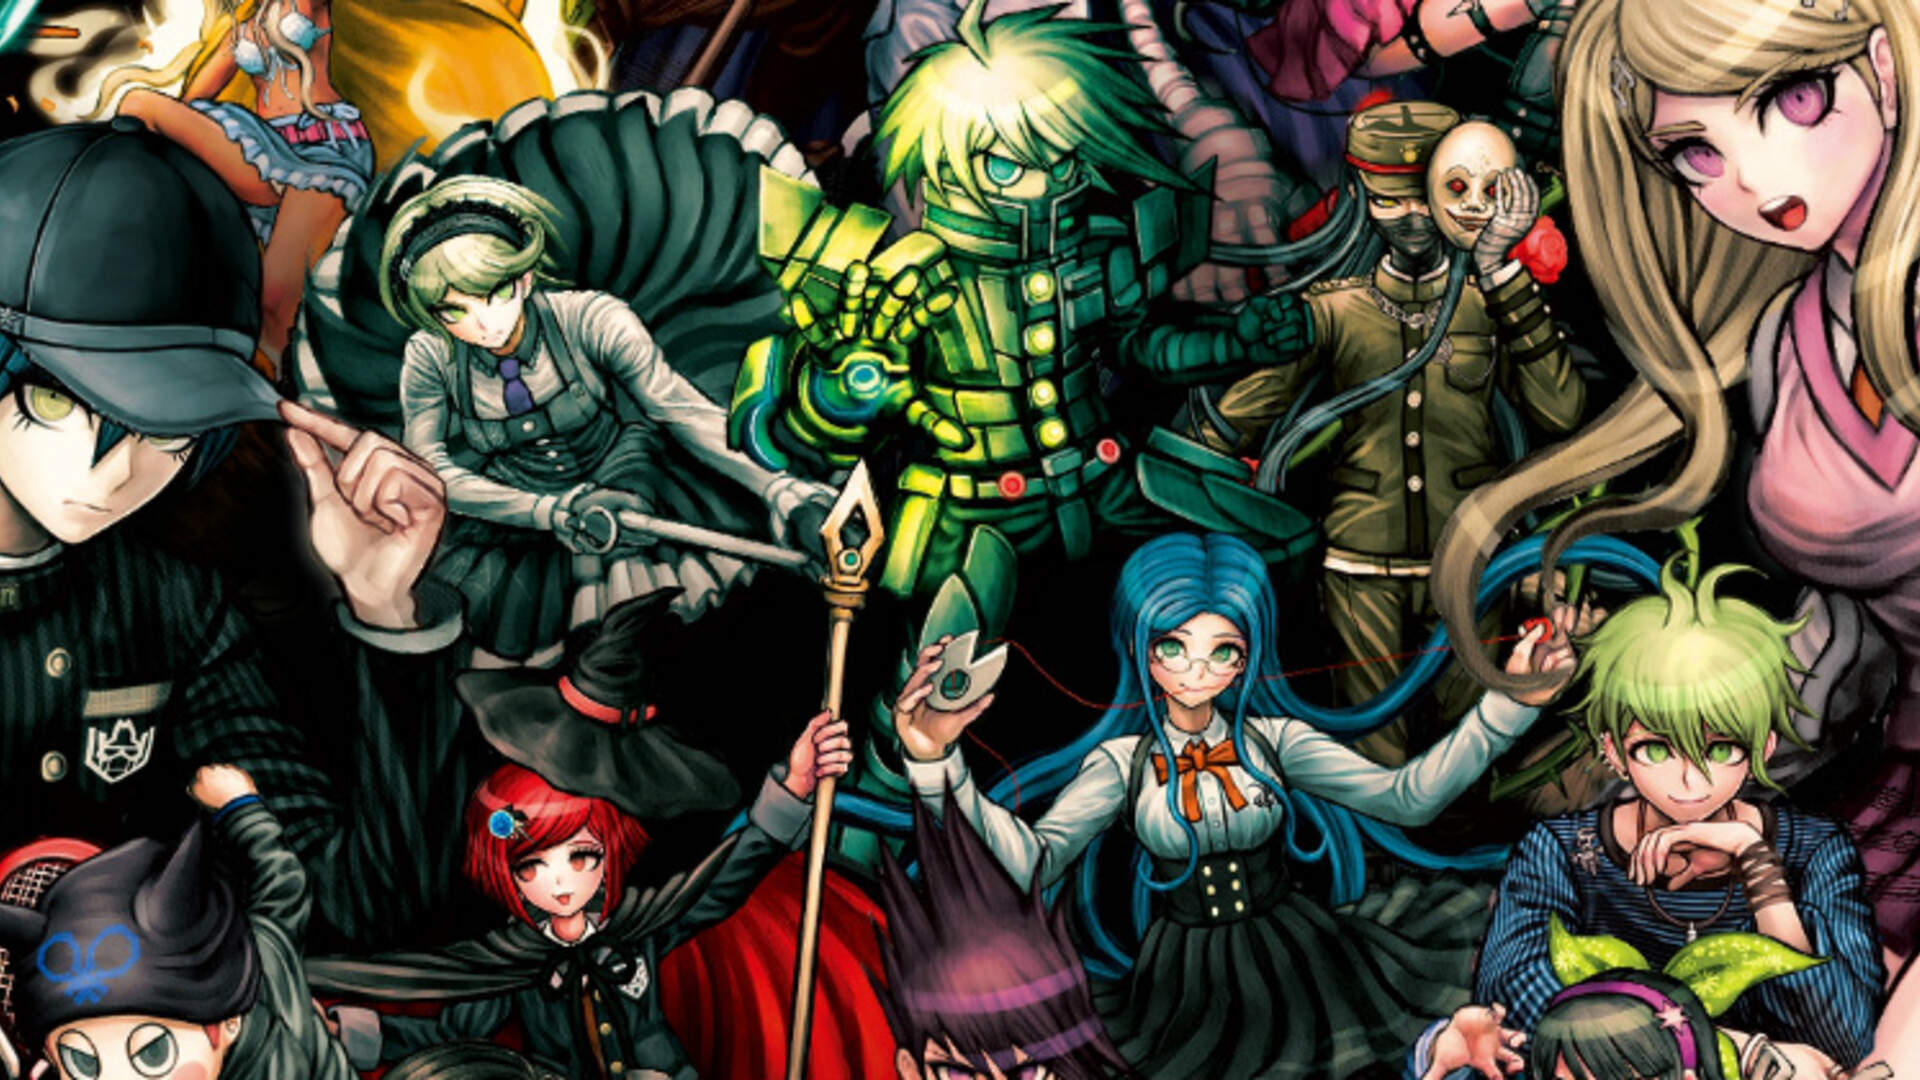 Danganronpa V3 Heads West for PS4 and Vita in 2017